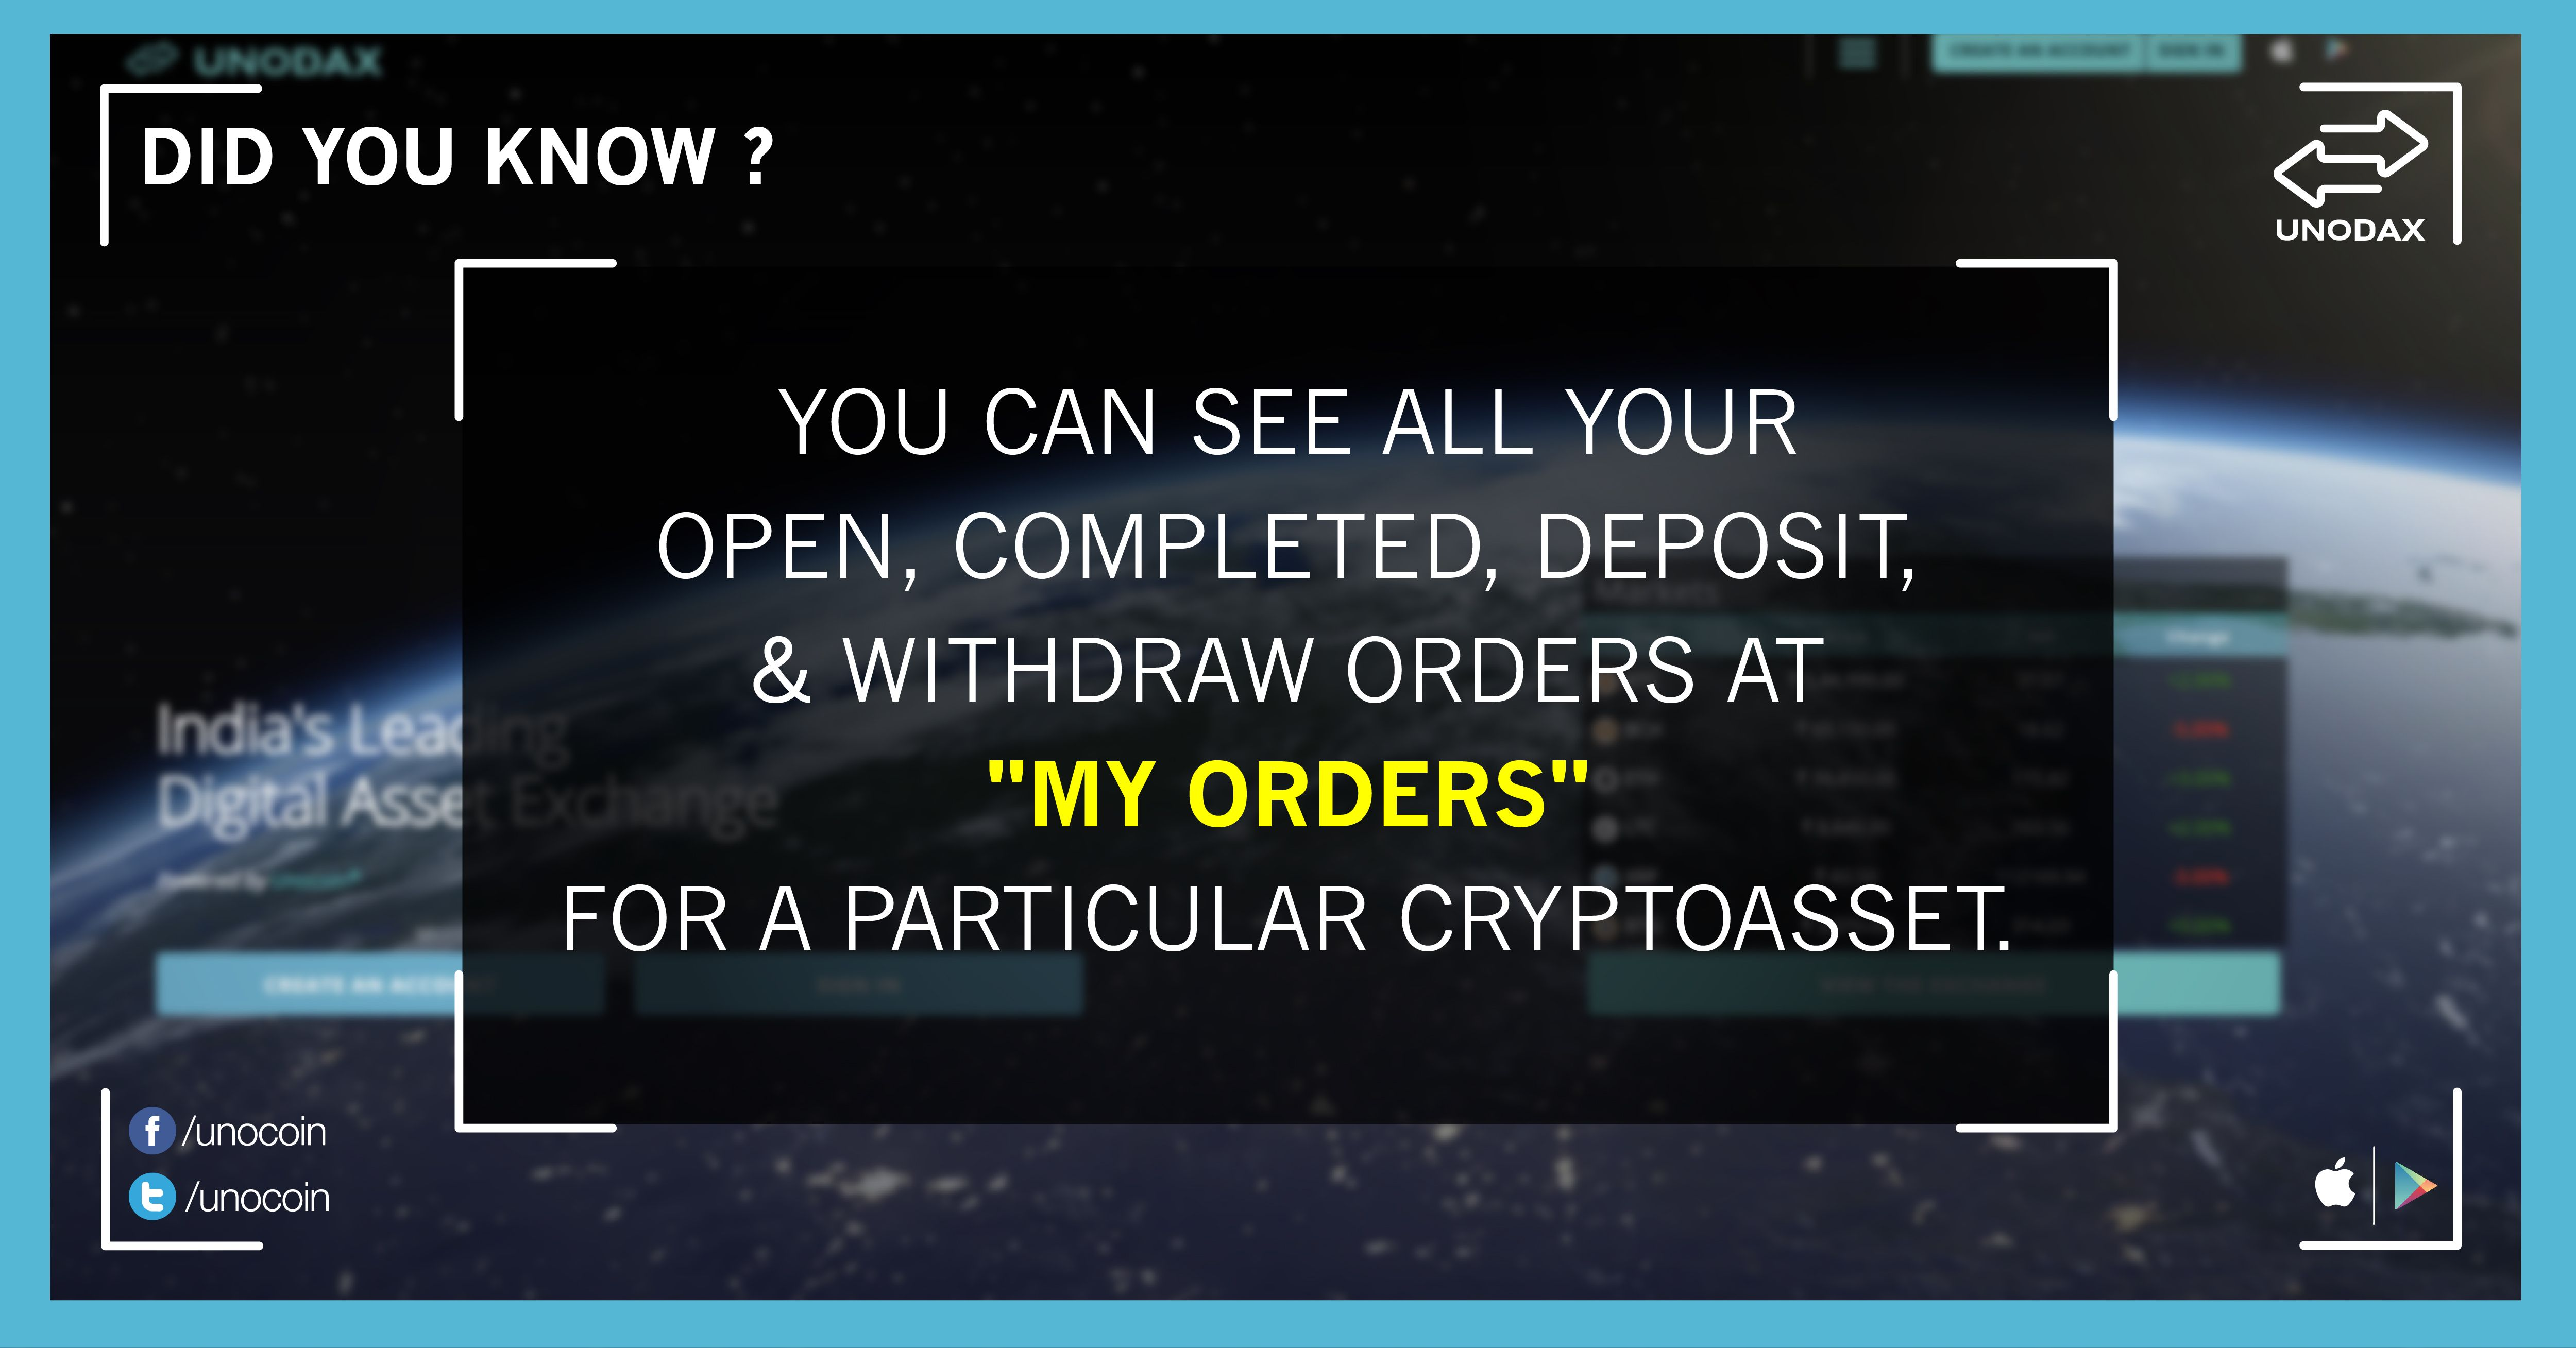 Check all your open completed deposit withdraw orders